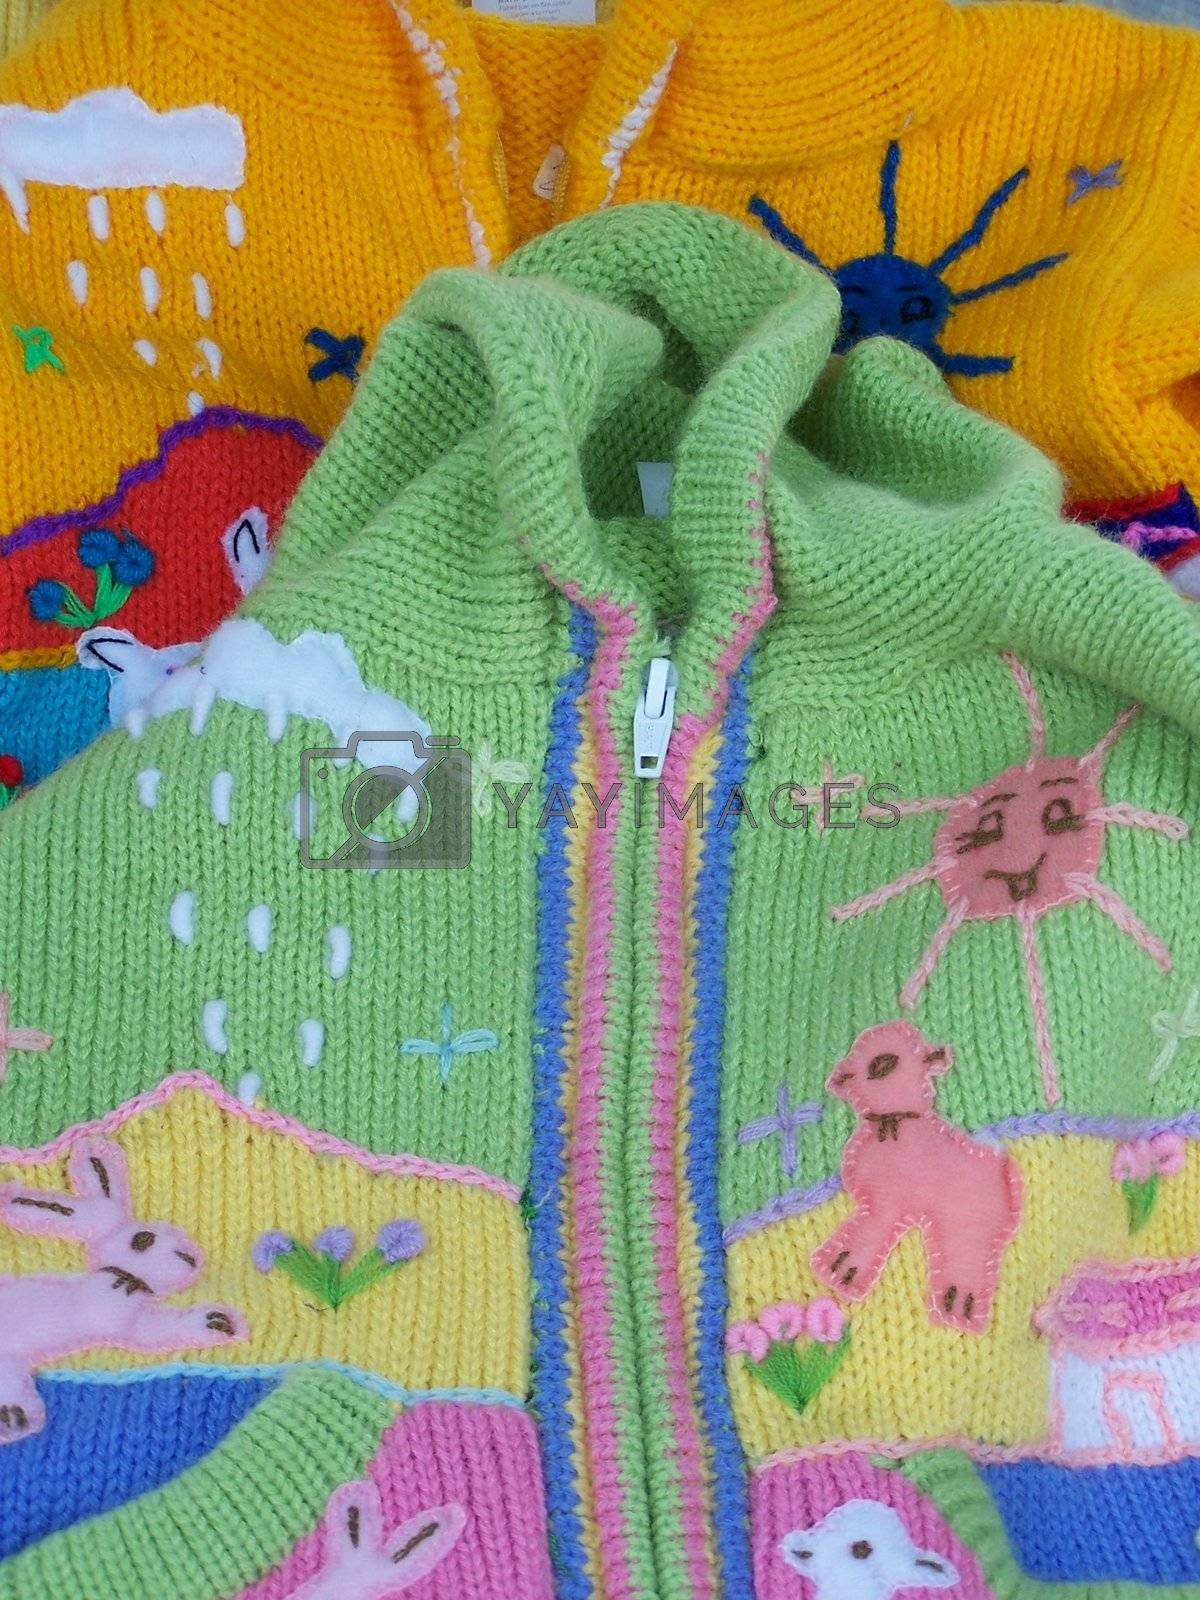 colorful baby sweaters look like spring and Easter